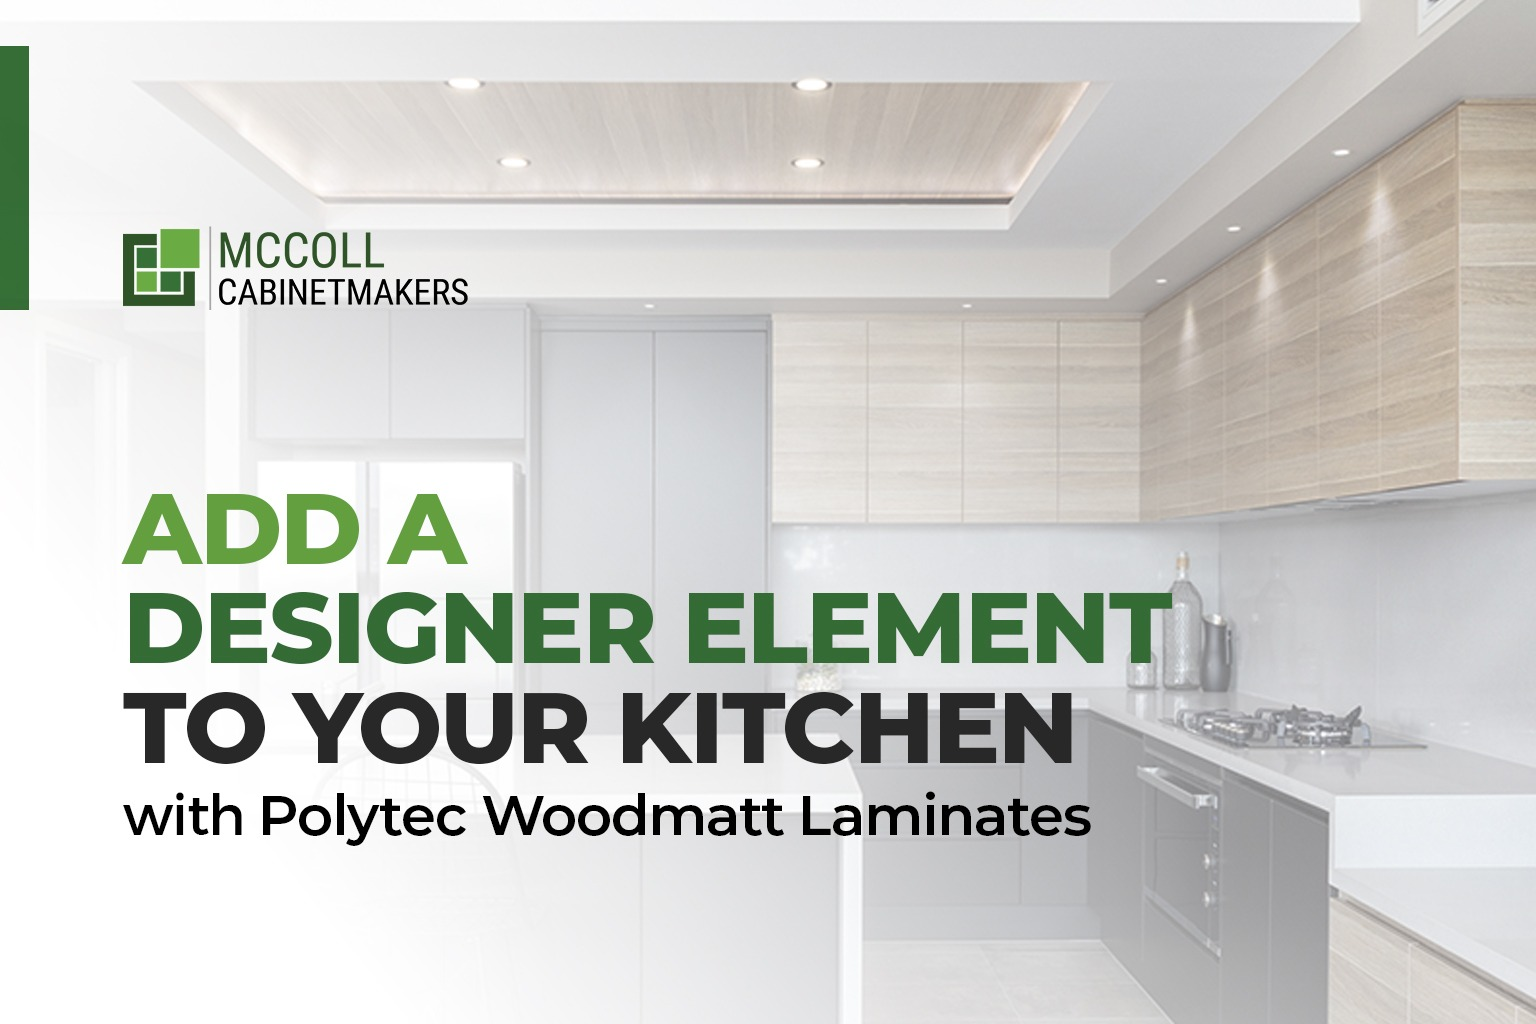 kitchen_cabinet_makers_McColl_Cabinetmakers